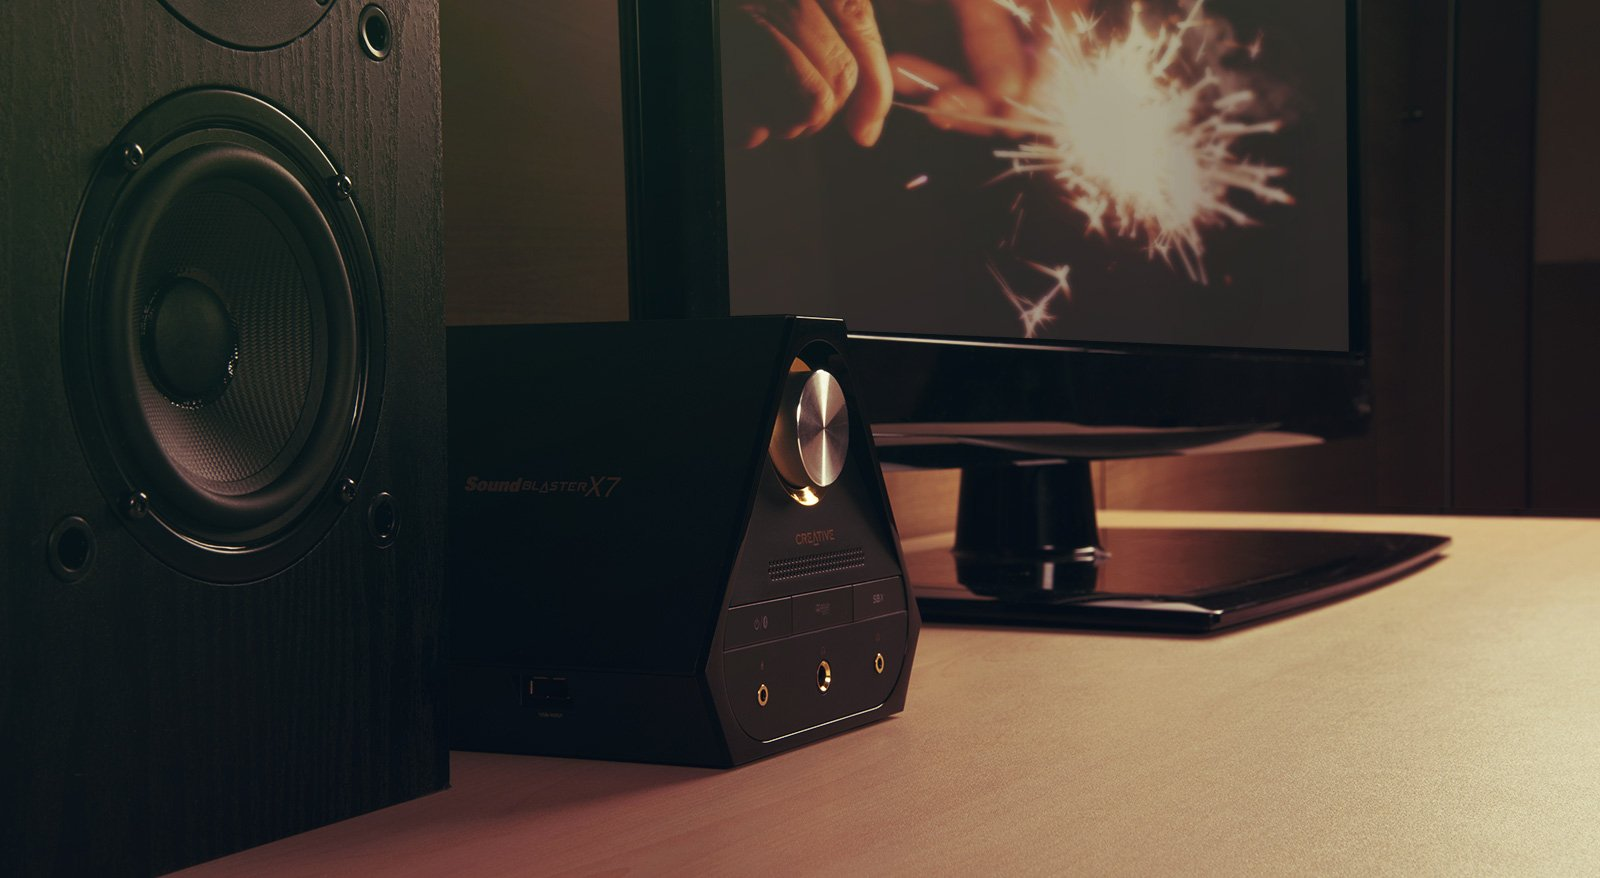 Creative Sound Blaster X7 High-Resolution USB DAC 600 ohm Headphone Amplifier with Bluetooth Connectivity by Creative (Image #7)